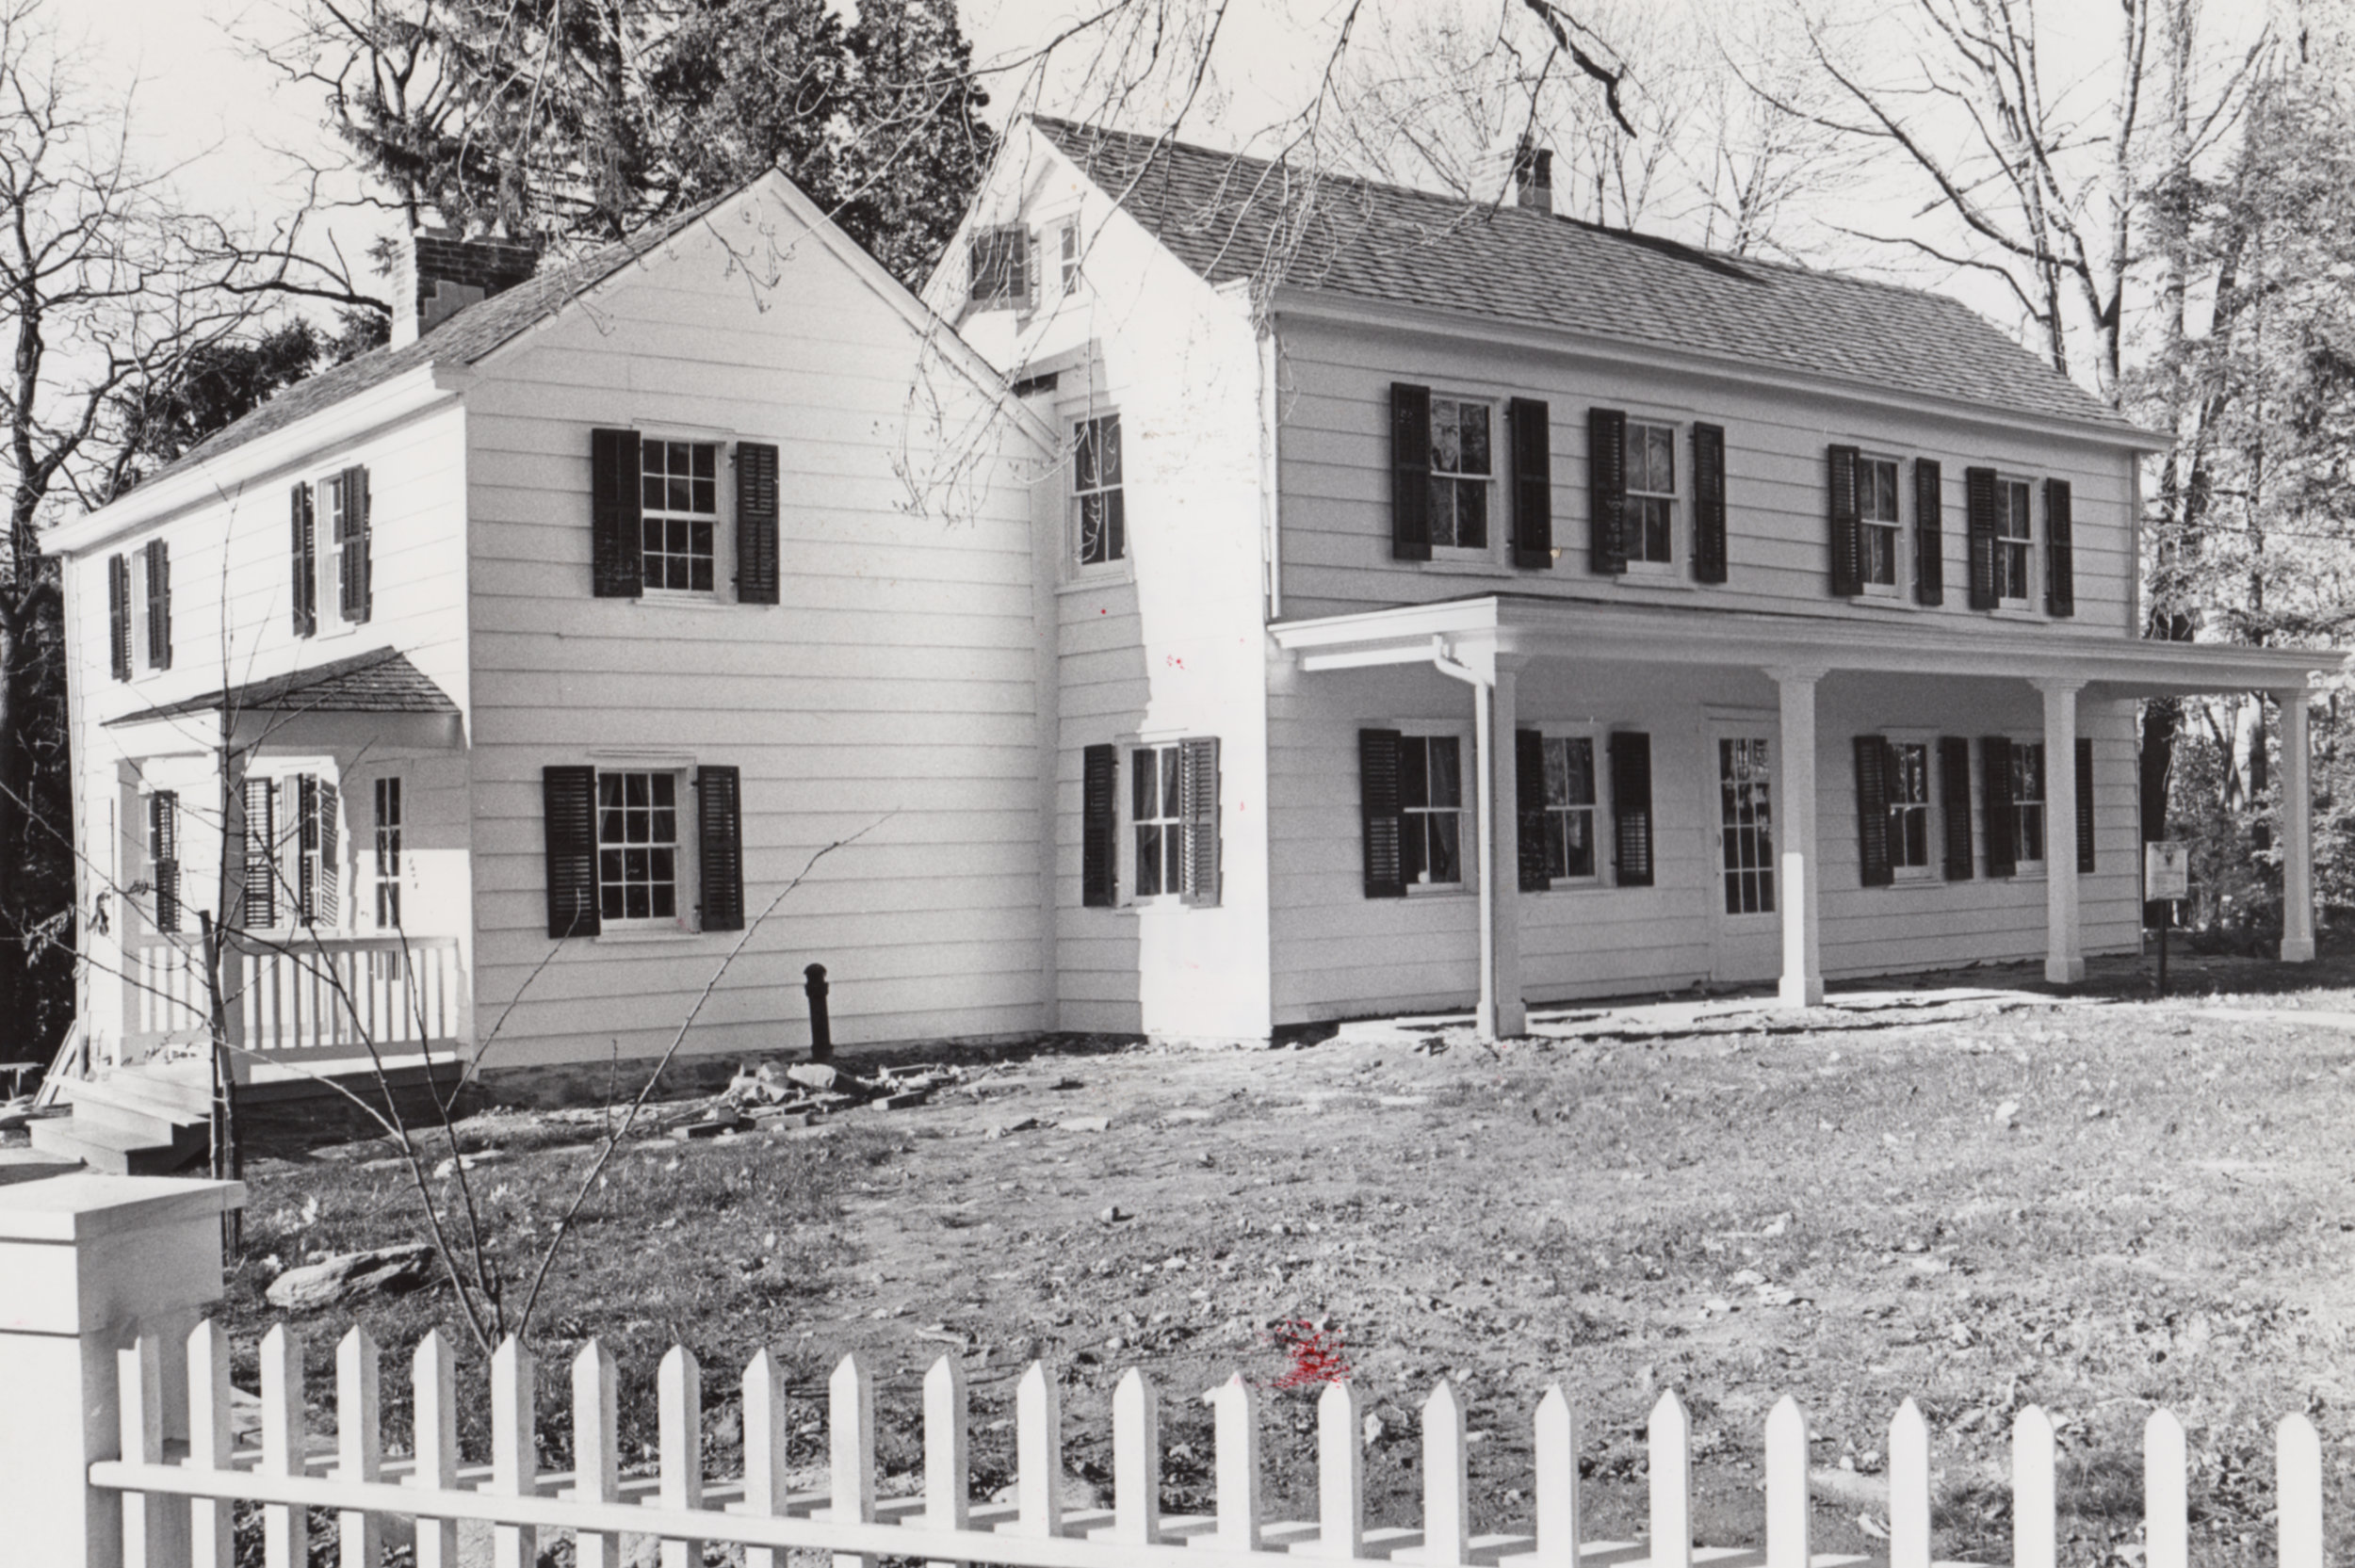 The house in 1977.The exterior restoration was completed in 1980.